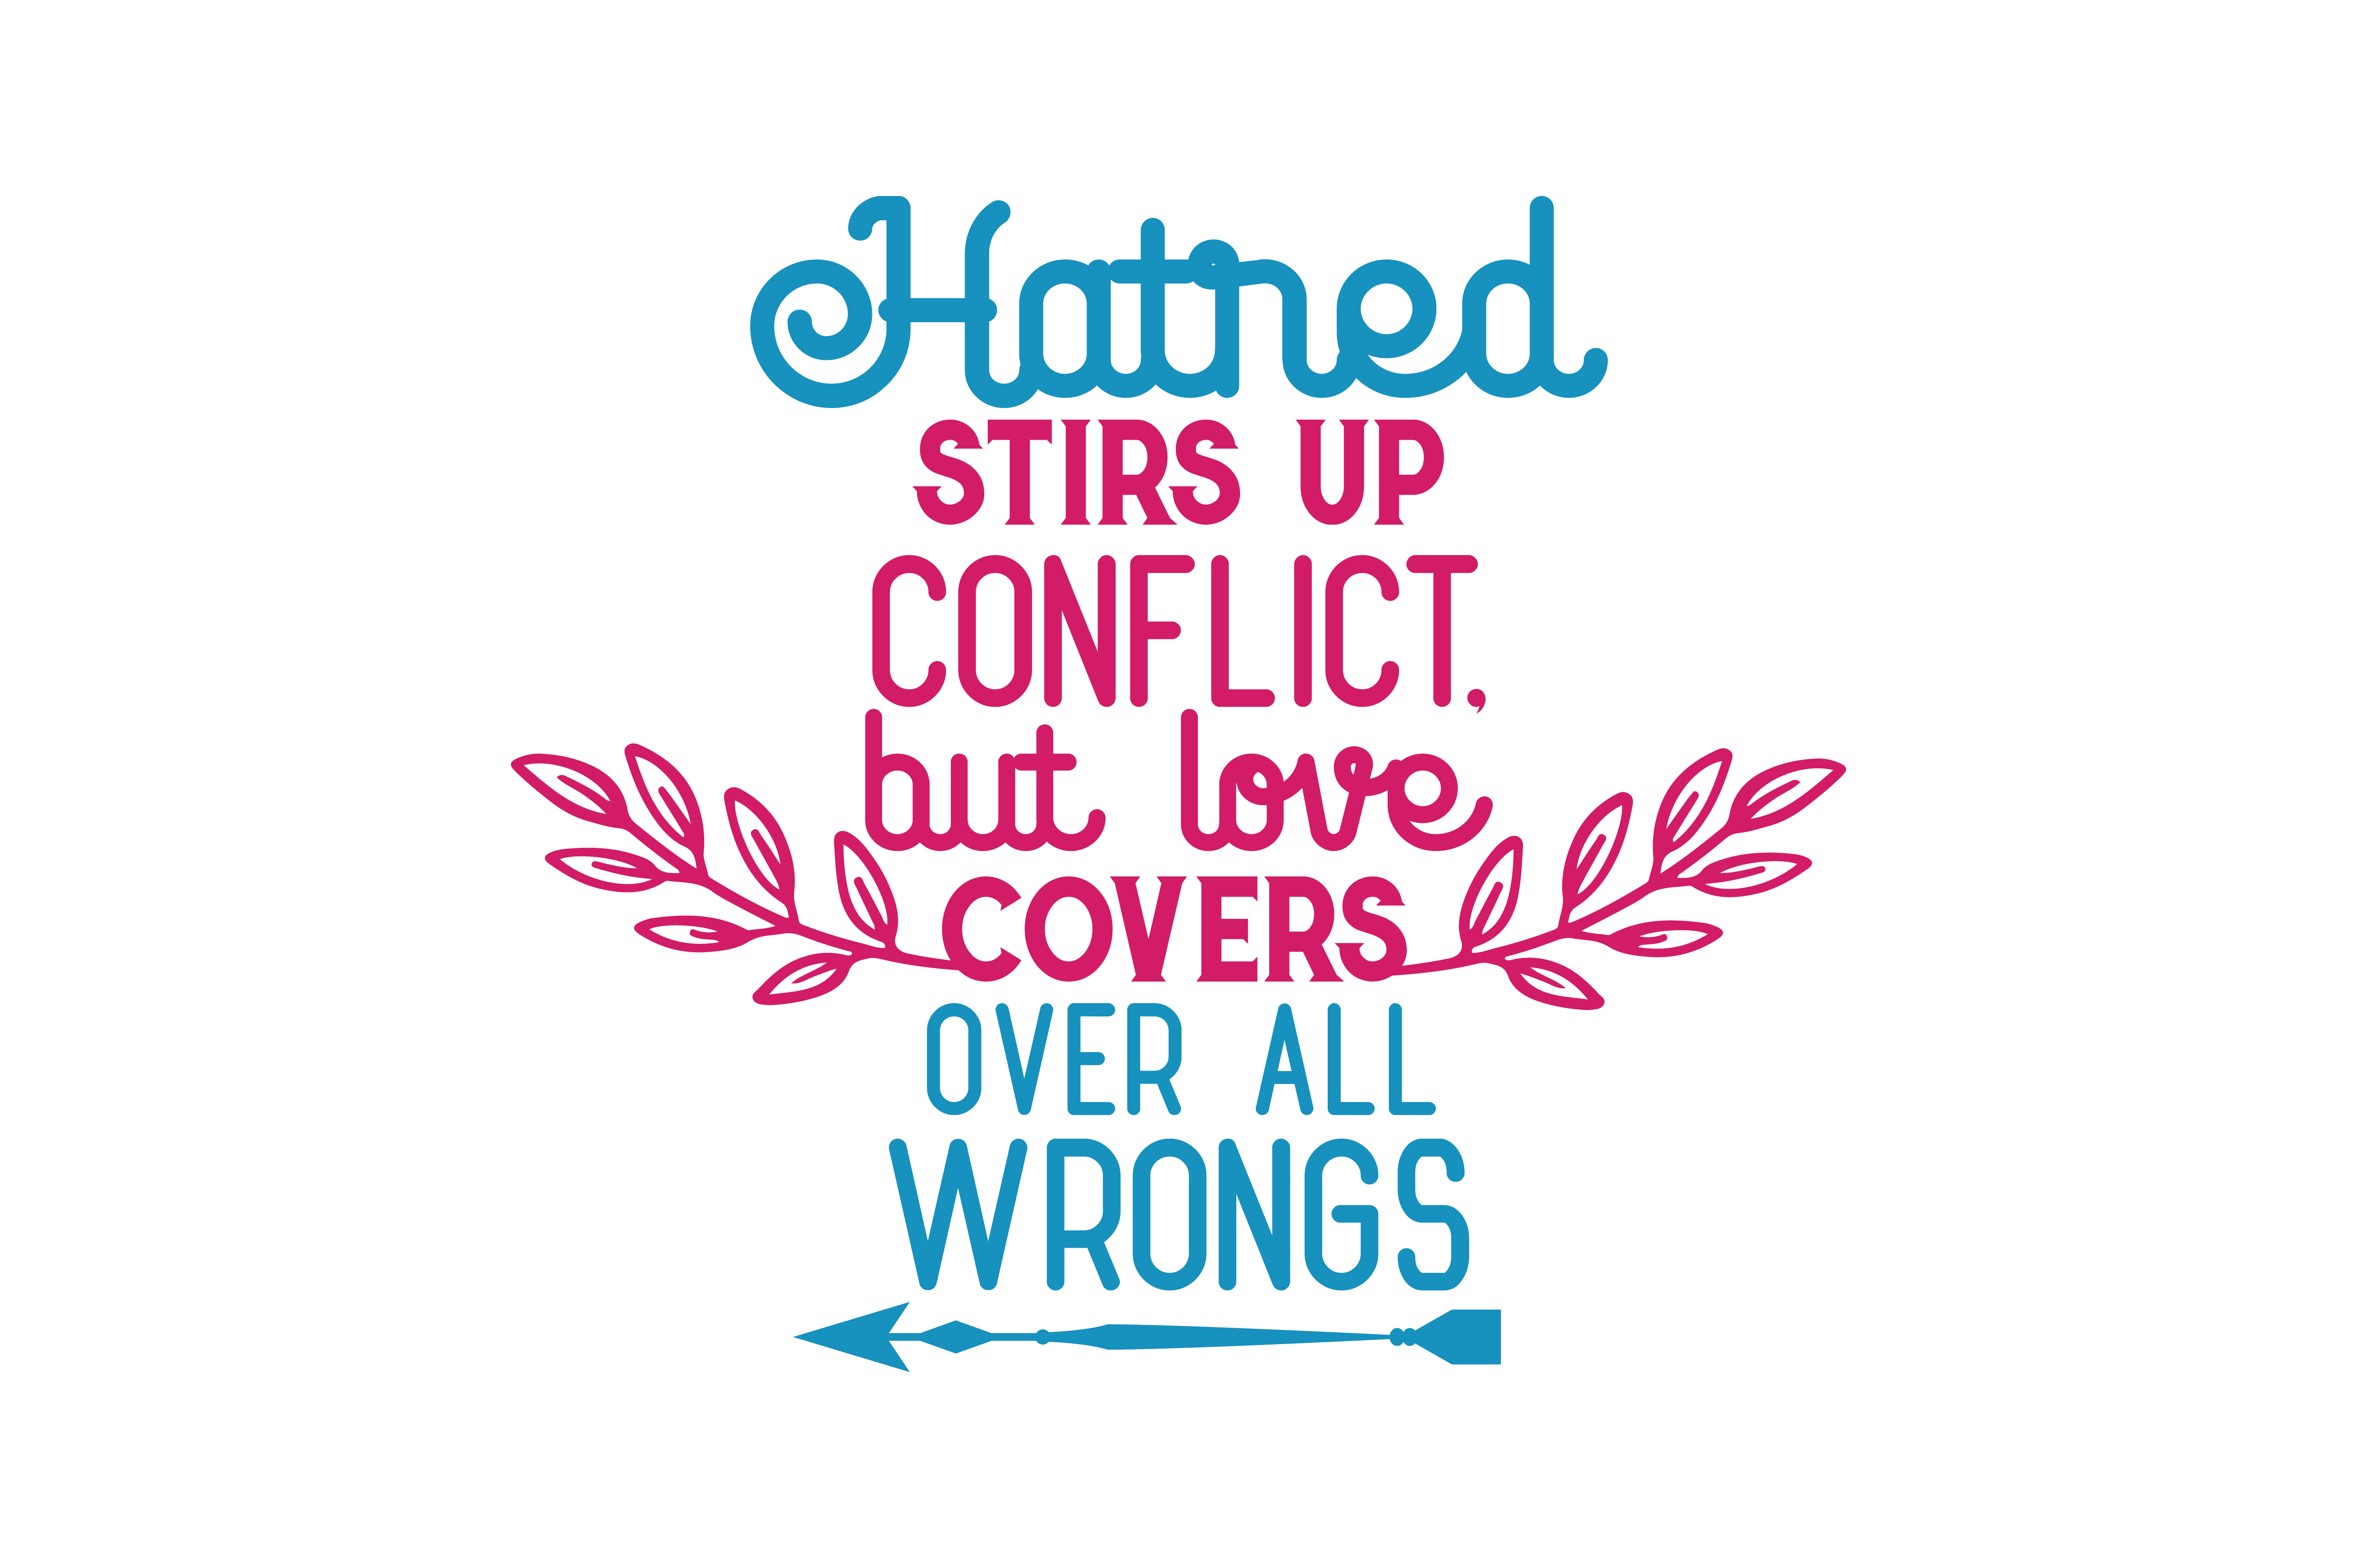 Download Free Hatred Stirs Up Conflict But Love Covers Over All Wrongs Quote for Cricut Explore, Silhouette and other cutting machines.